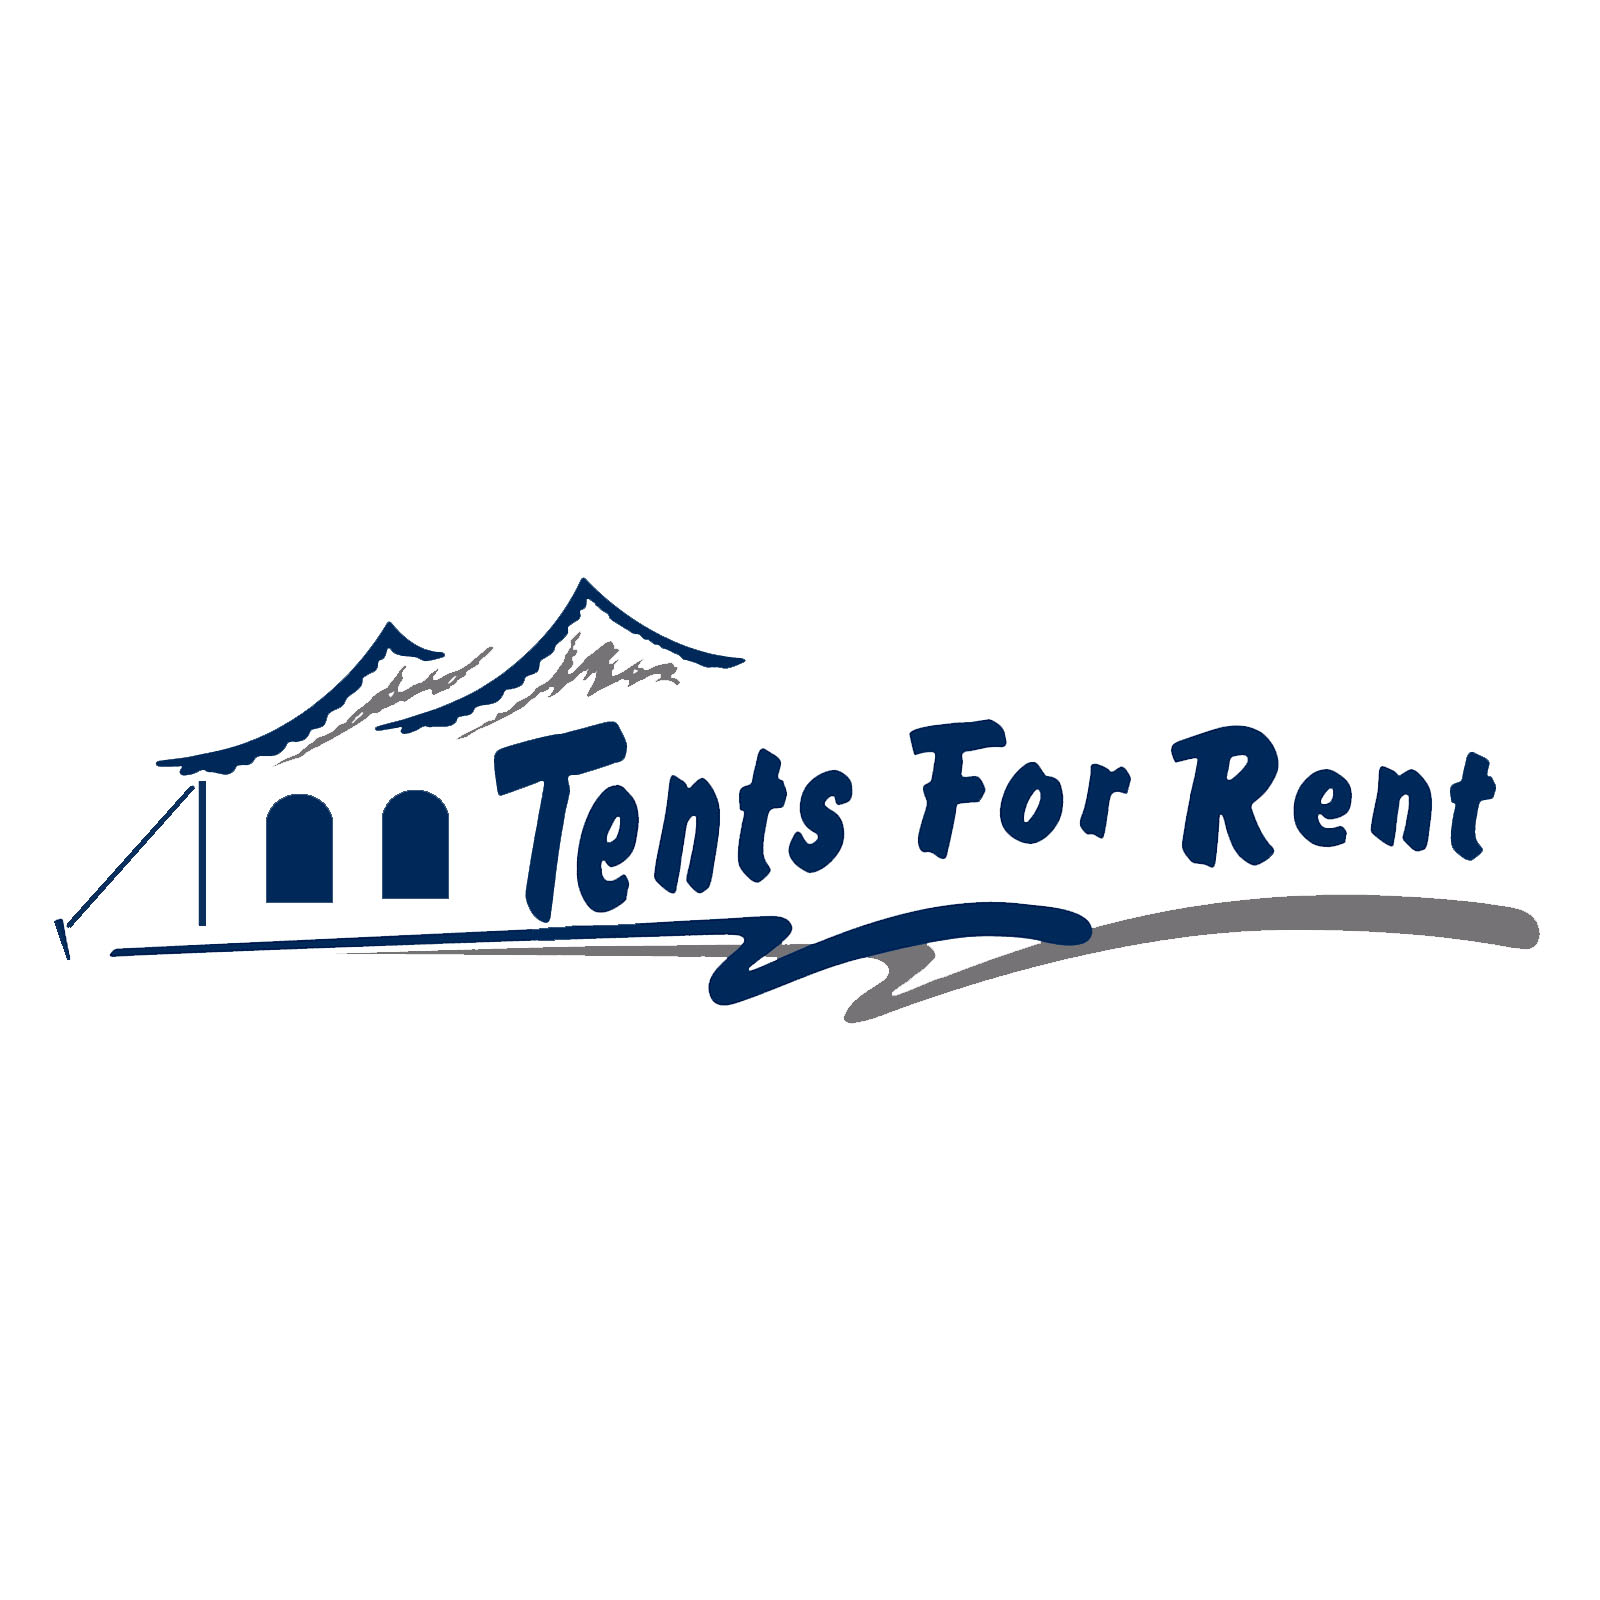 Tents for Rent logo